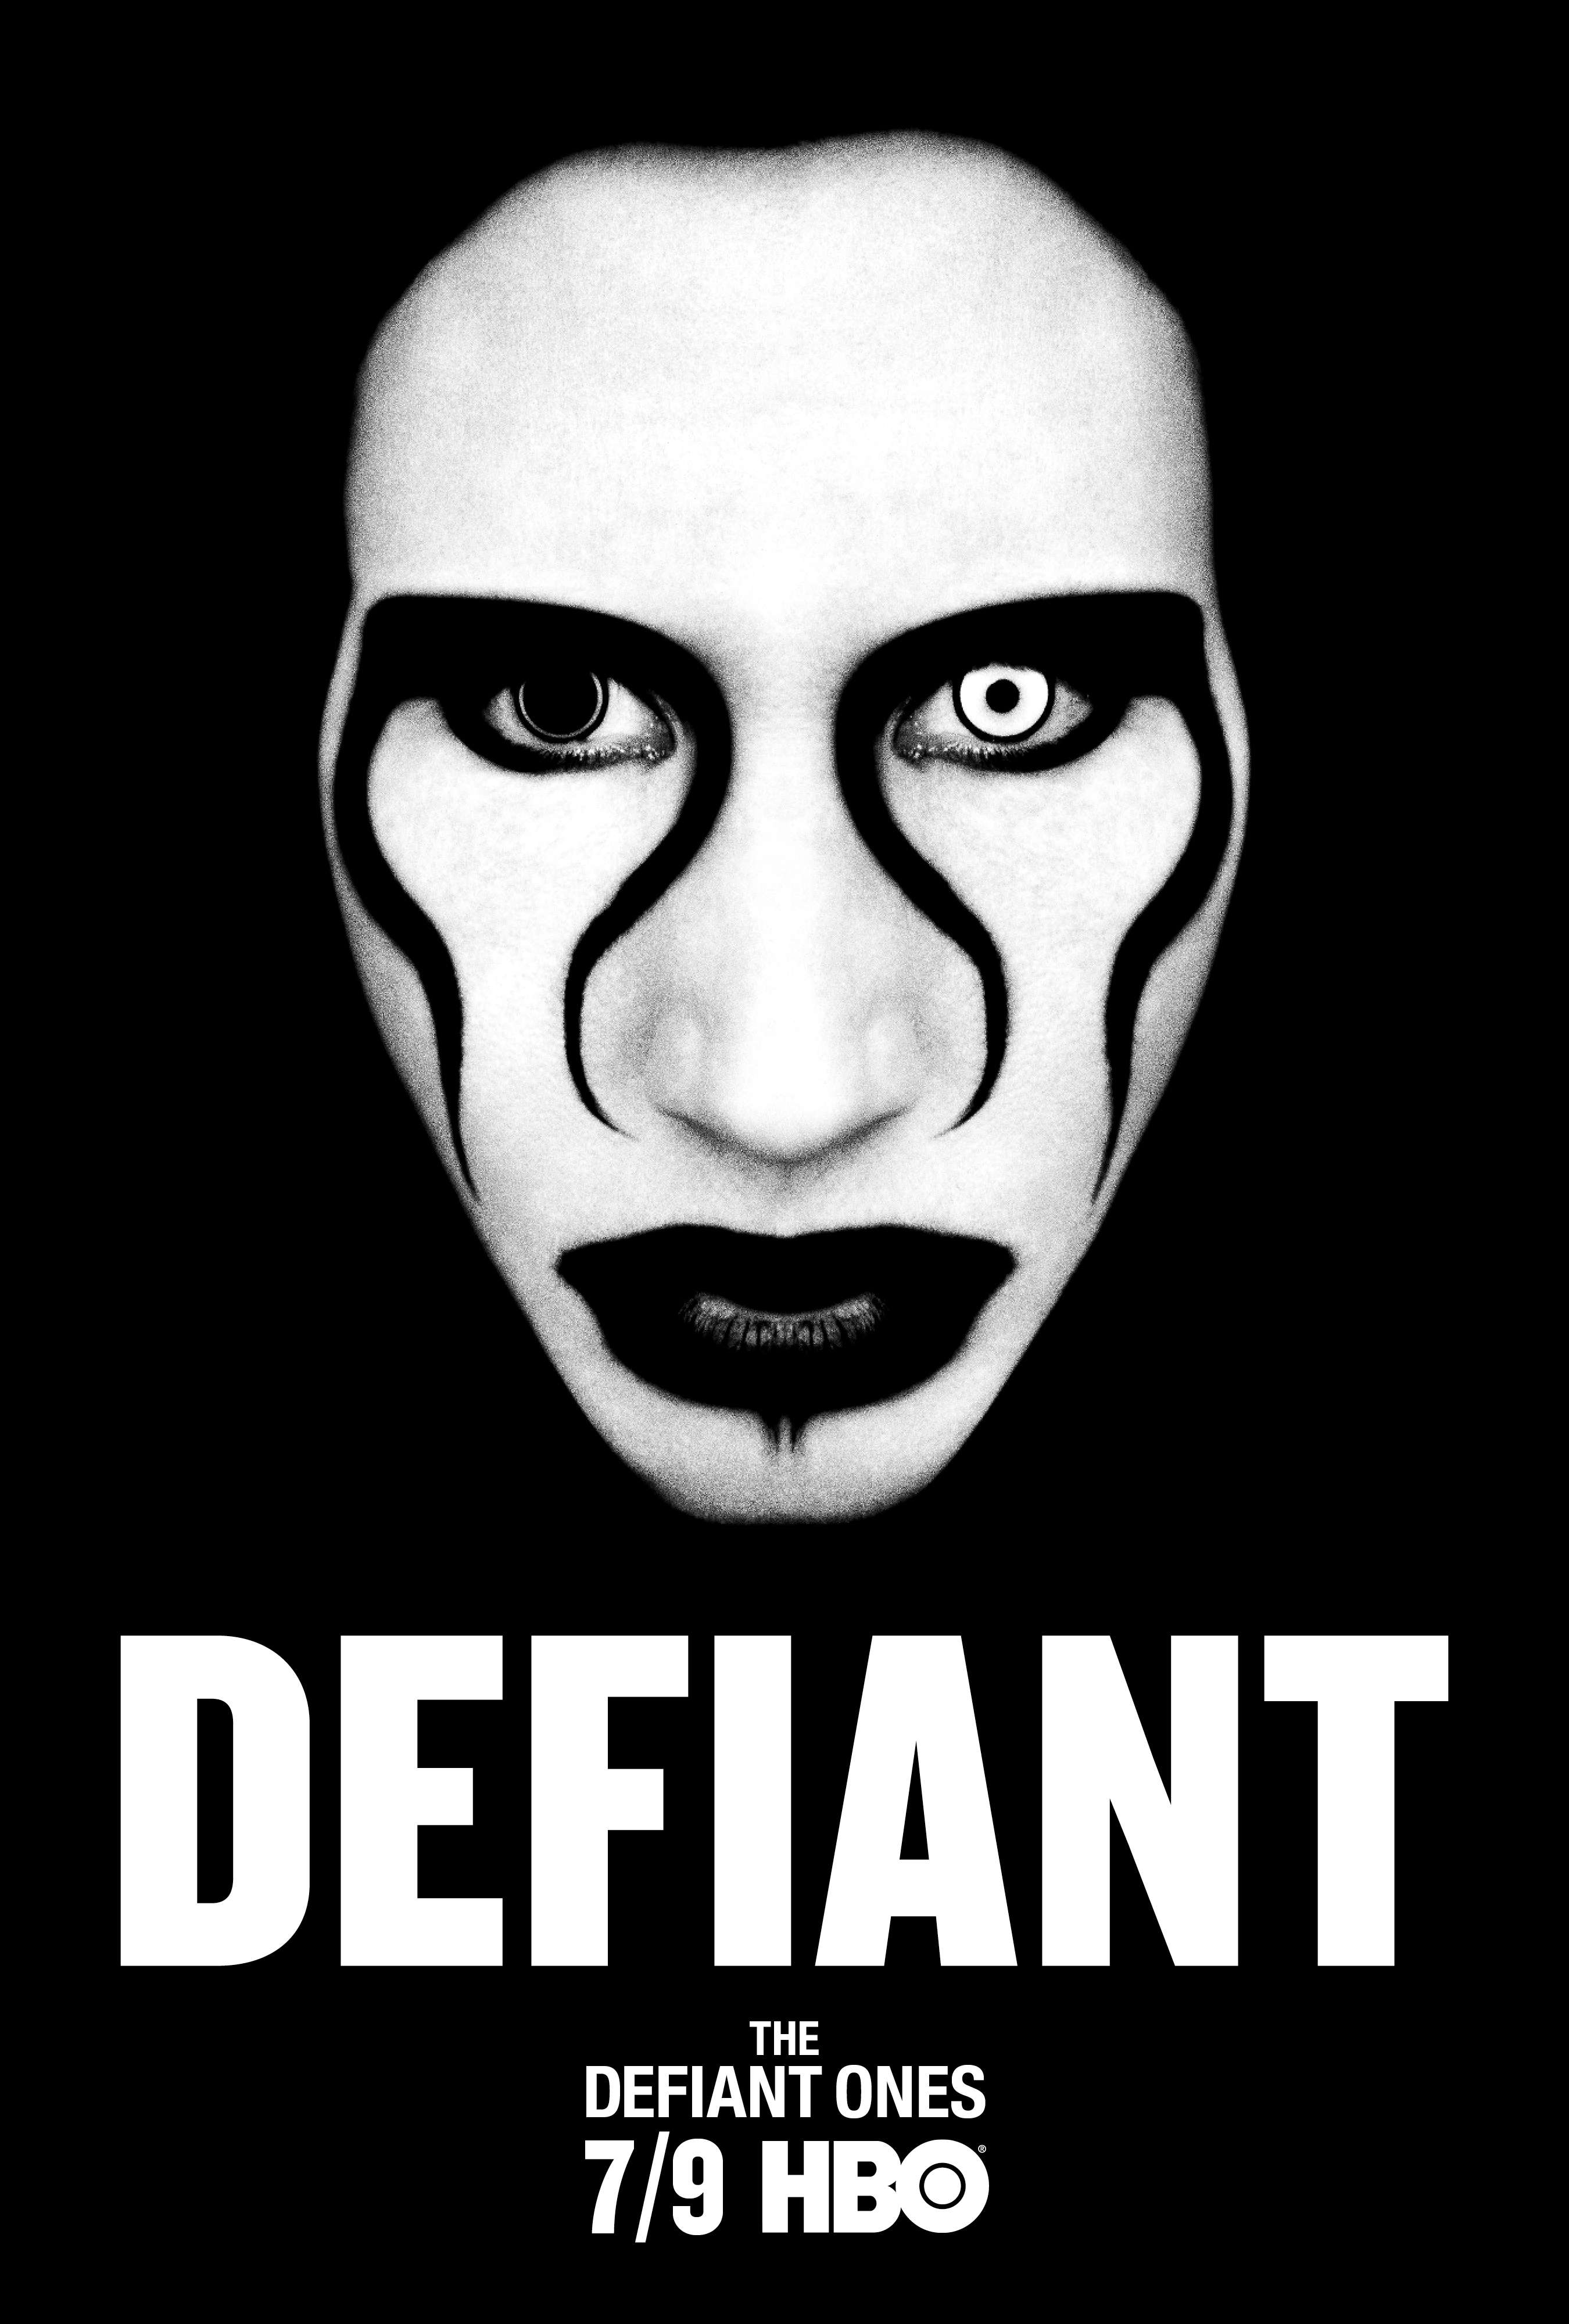 Image for The Defiant Ones Character Banner: Marilyn Manson